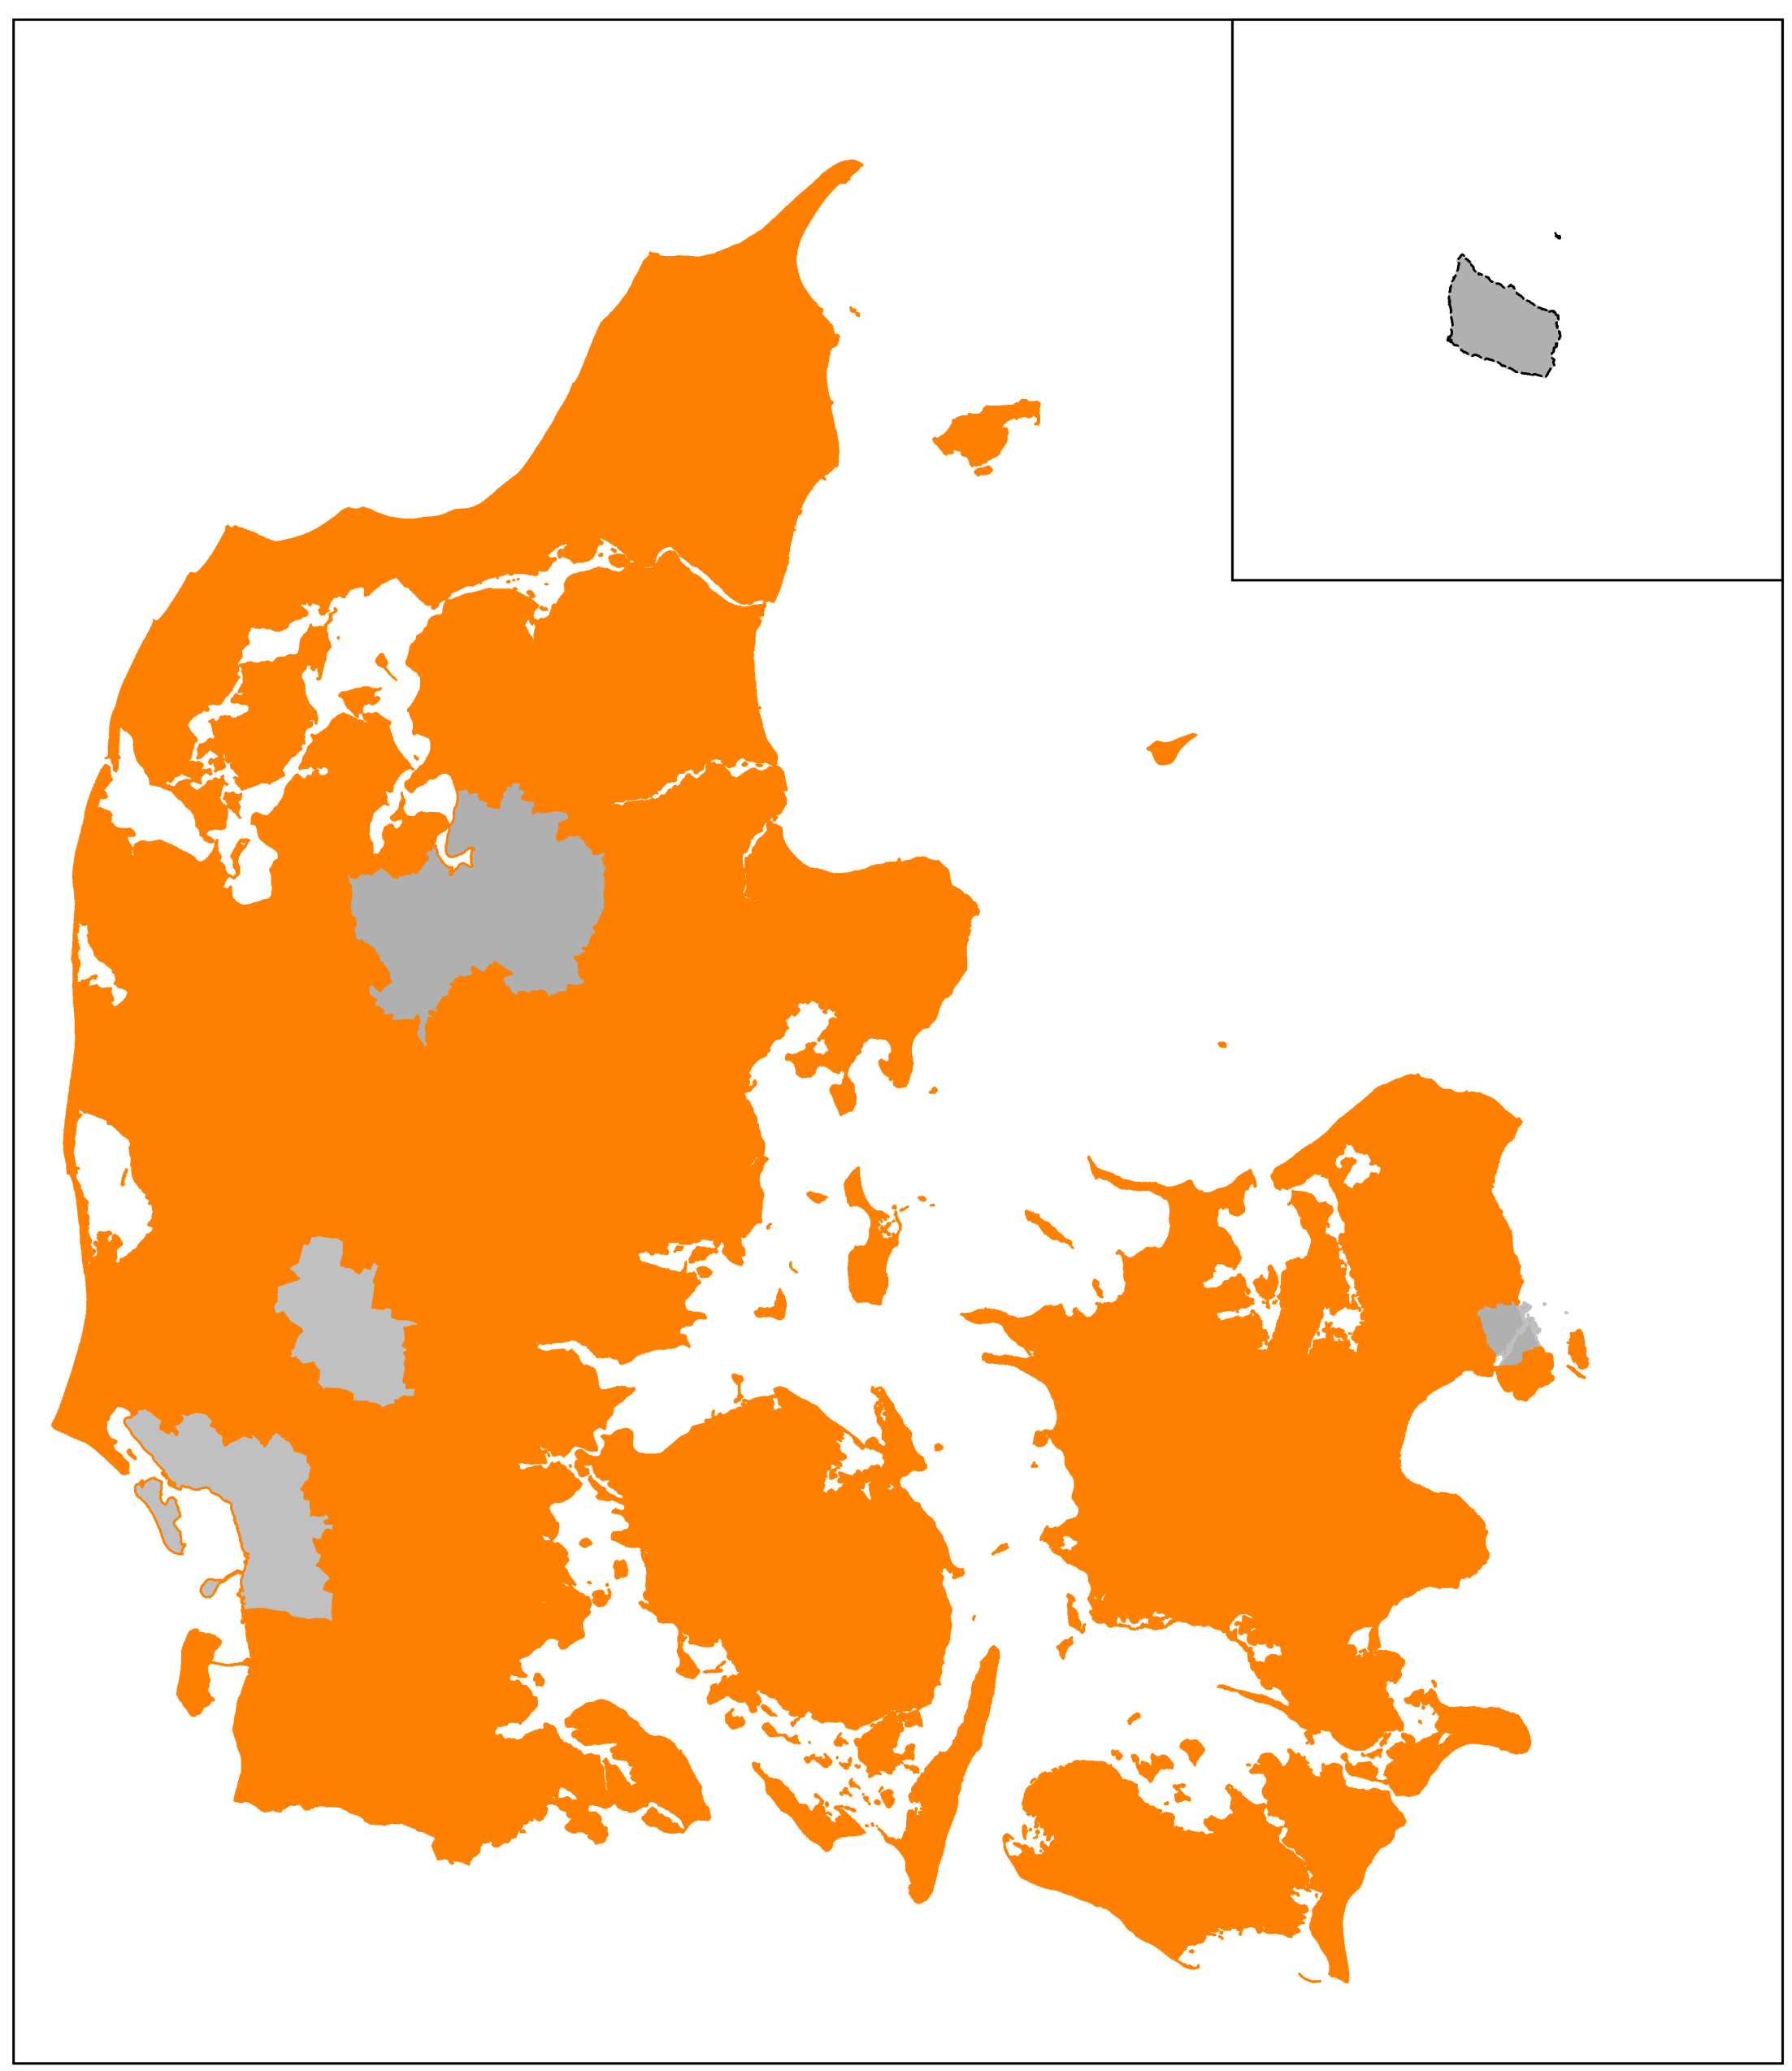 Medlemsmuseer fremhævet orange